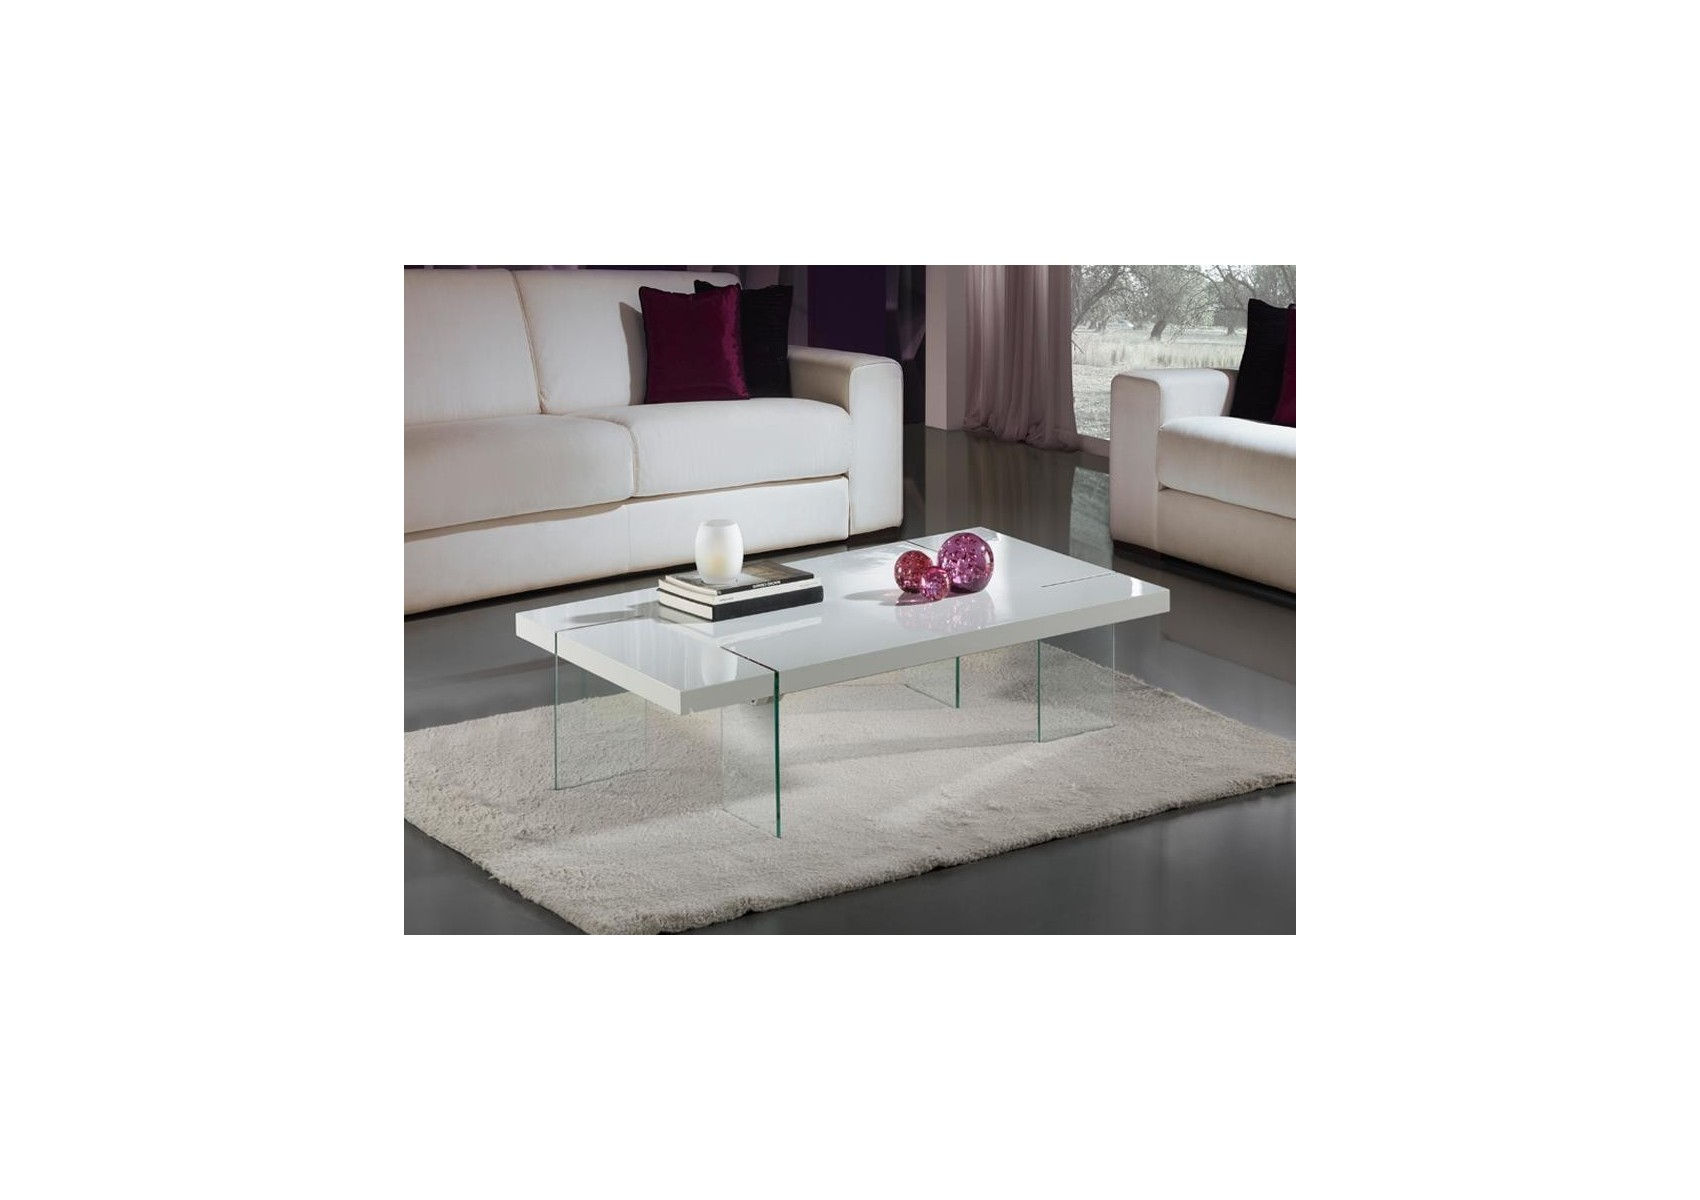 table basse design blanc table basse eslov blanc laqu design avec plateau meuble salon ebay. Black Bedroom Furniture Sets. Home Design Ideas